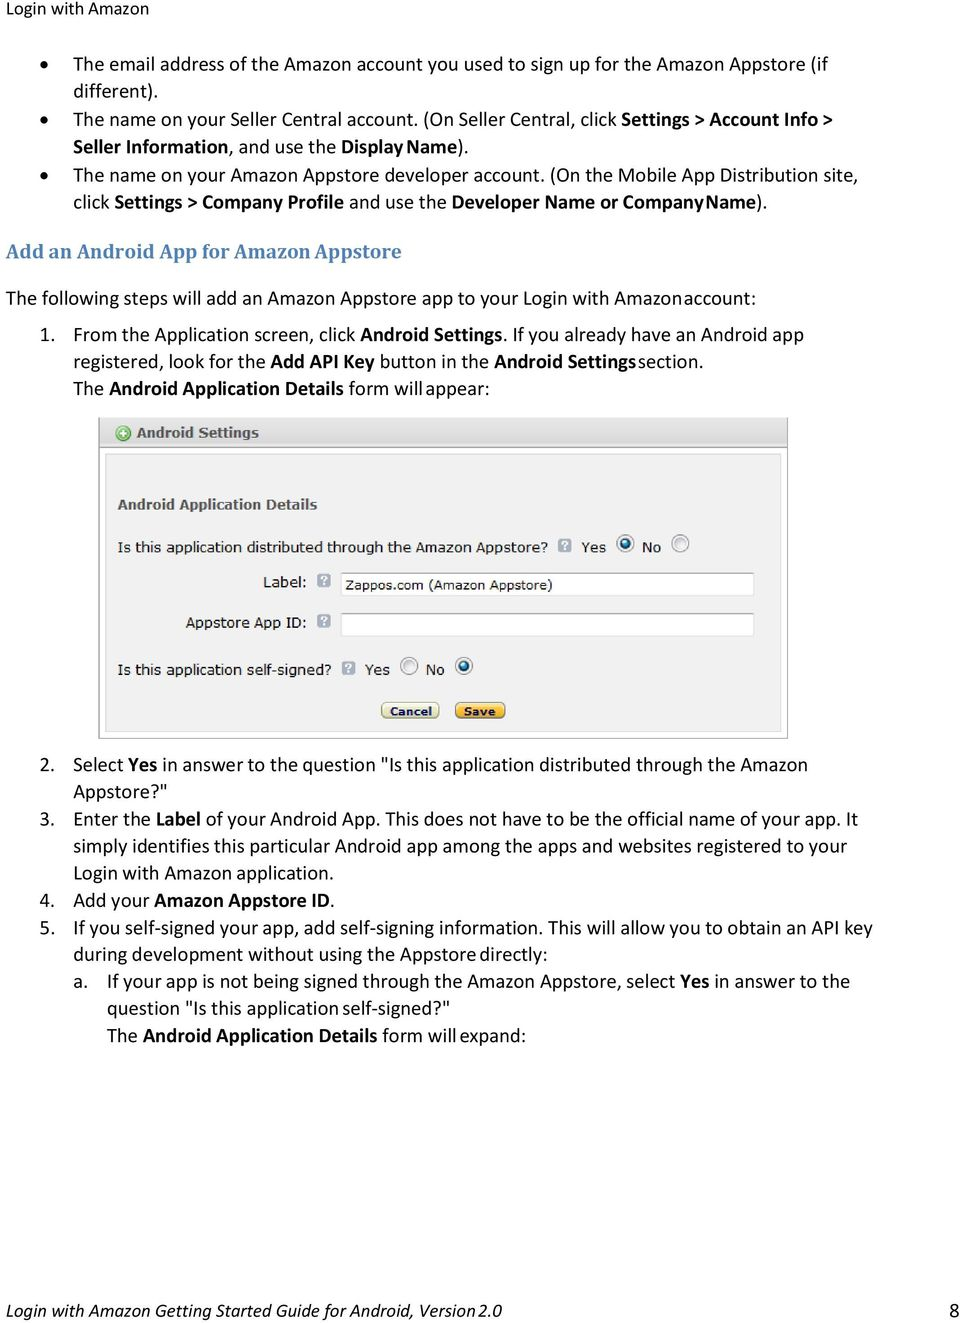 Login with Amazon Getting Started Guide for Android  Version PDF